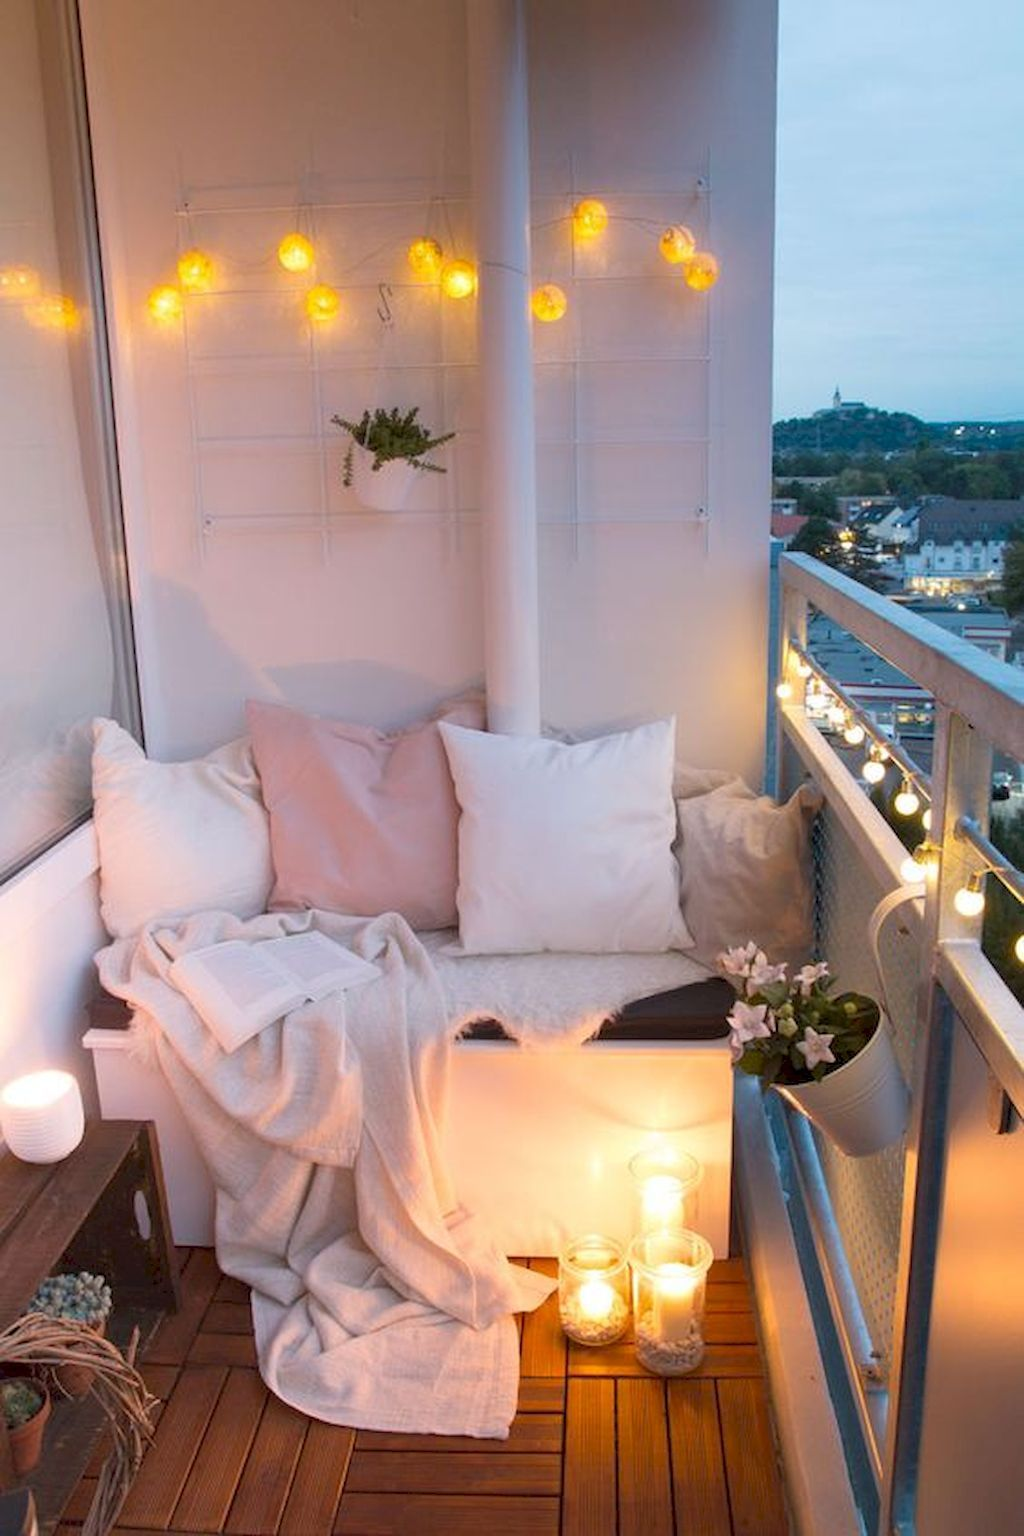 balcony lighting decorating ideas. 60 Space Saving Small Studio Decoration Ideas. Best Outdoor LightingLighting IdeasBalcony Balcony Lighting Decorating Ideas A